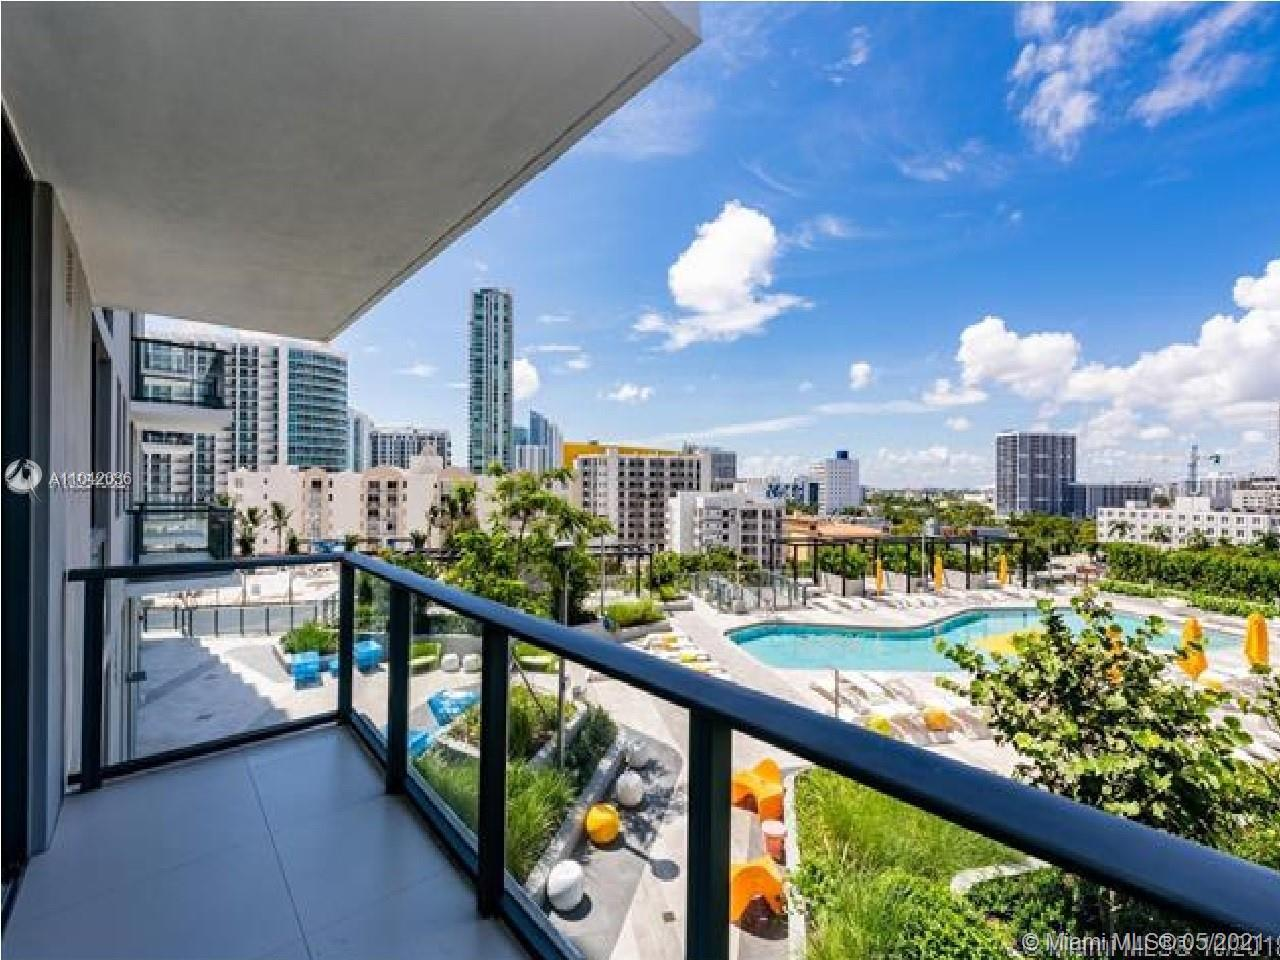 Brand new 2/2 unit in Paraiso Bayviews with high end finishes. Bosch appliances in kitchen, Italian